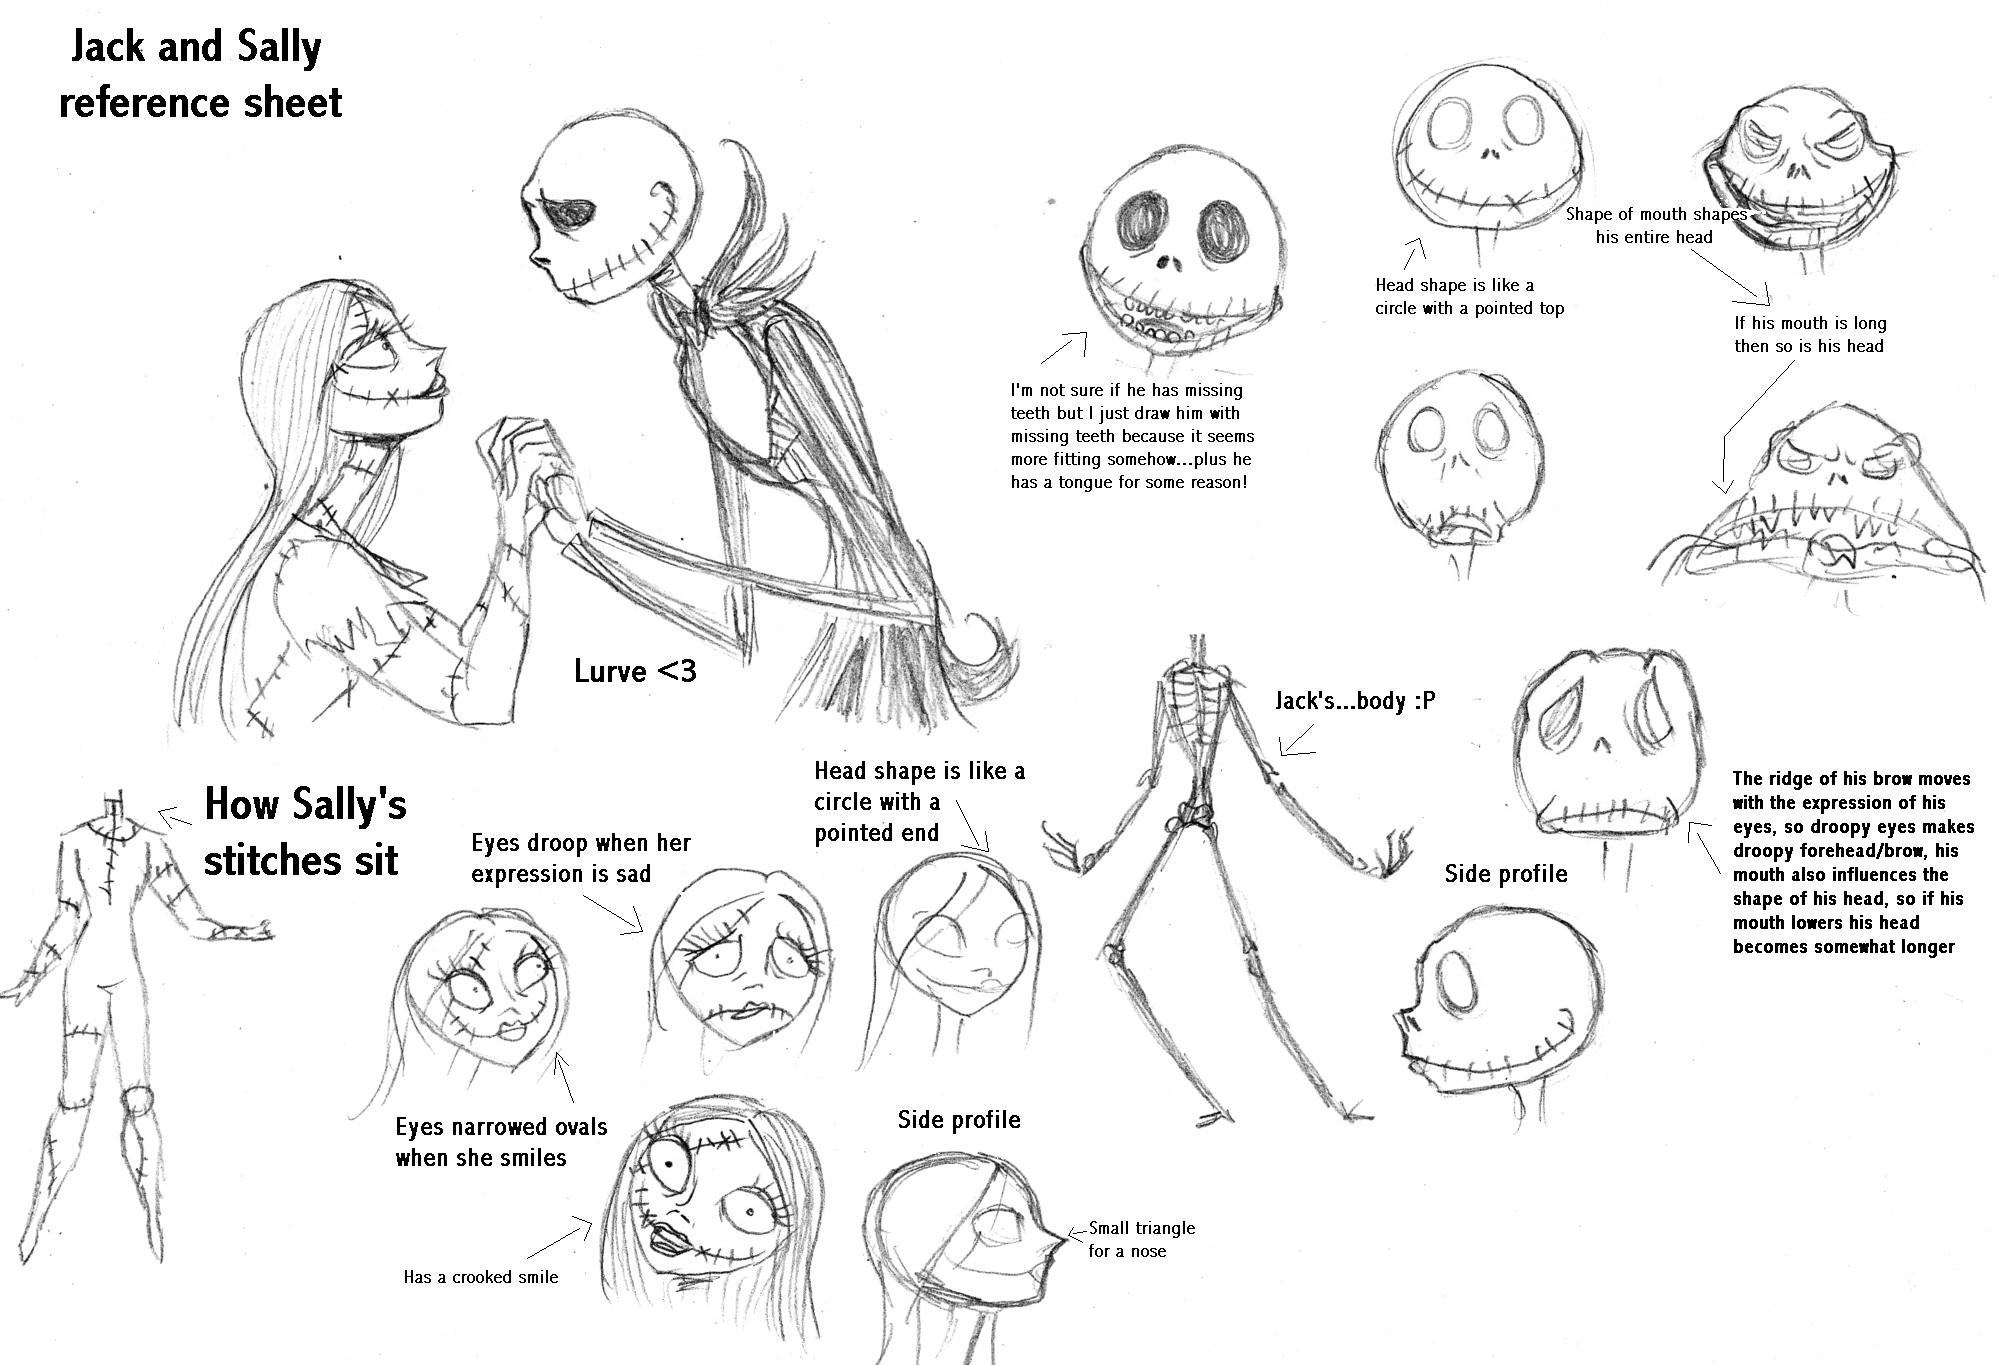 Jack and Sally reference sheet by Lily-pily on DeviantArt